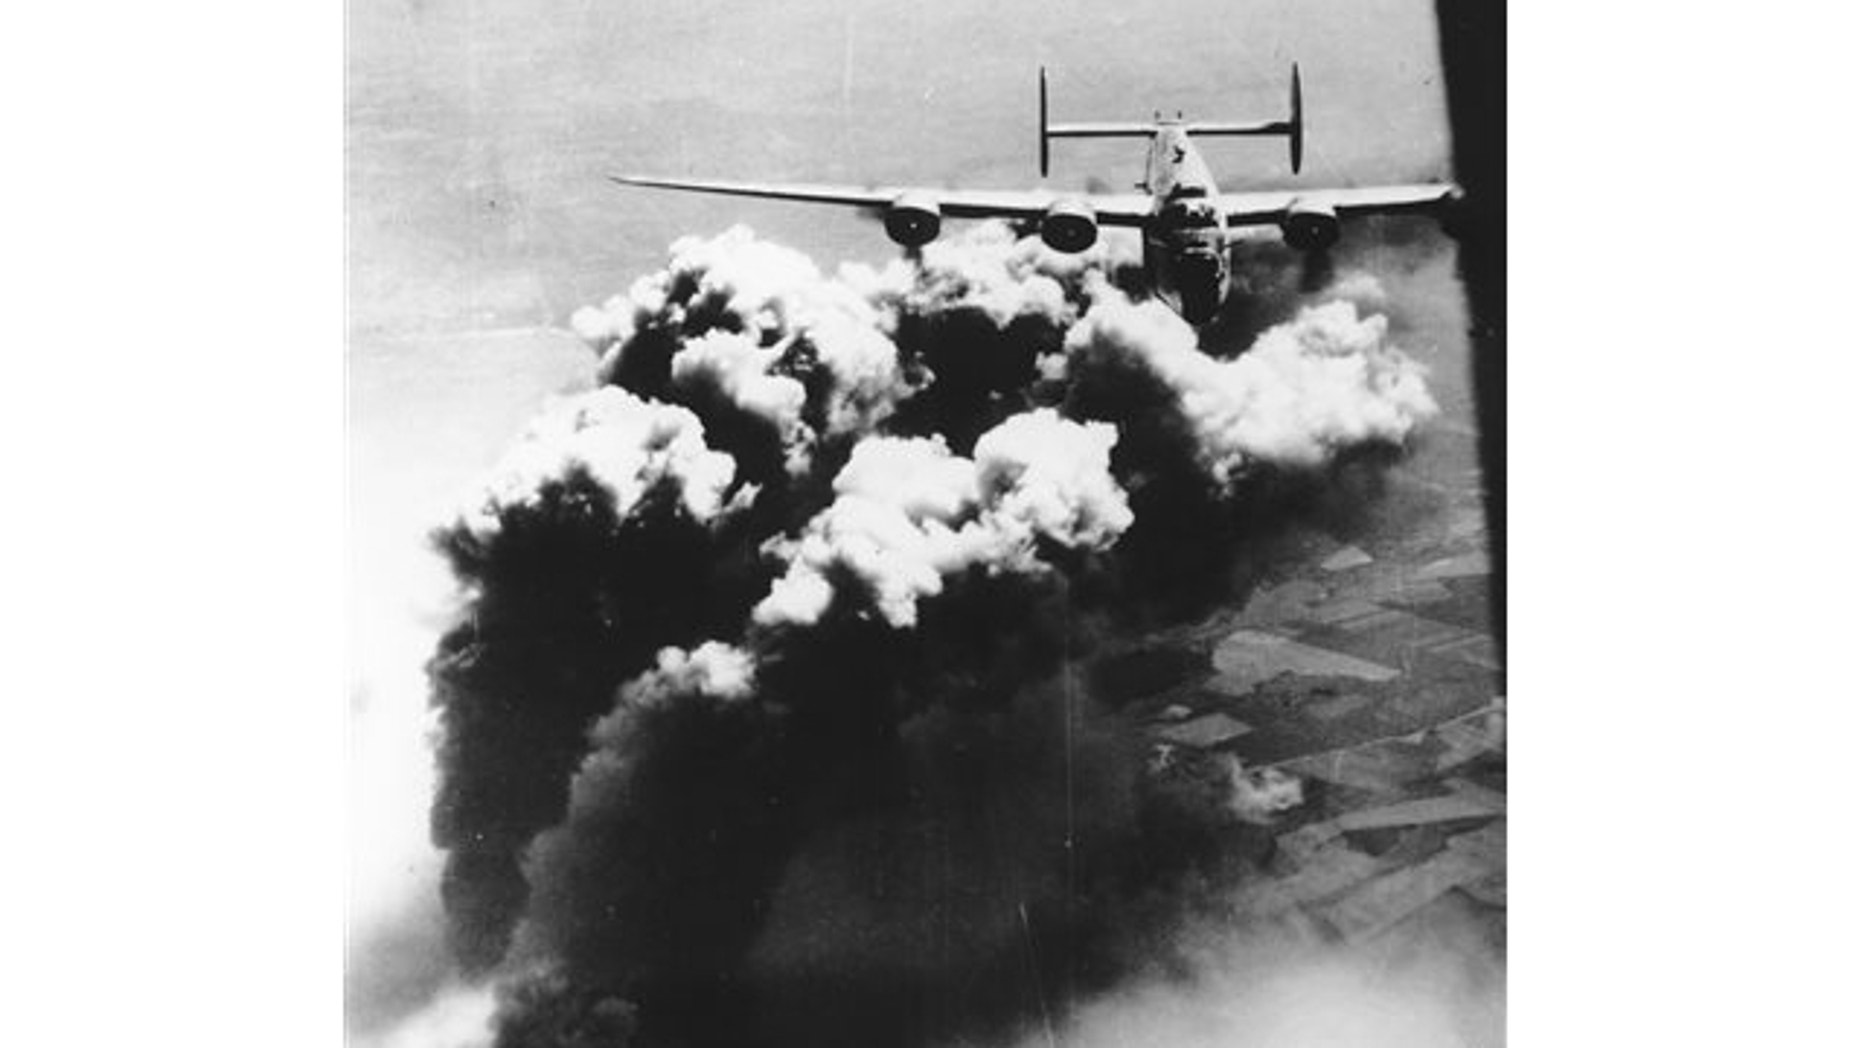 Aug. 1, 1943: A U.S. Army Air Force B-24 Liberator flies with plumes of black smoke rising from bombed facilities of the Astro Romano oil refinery at Ploiesti, Romania.